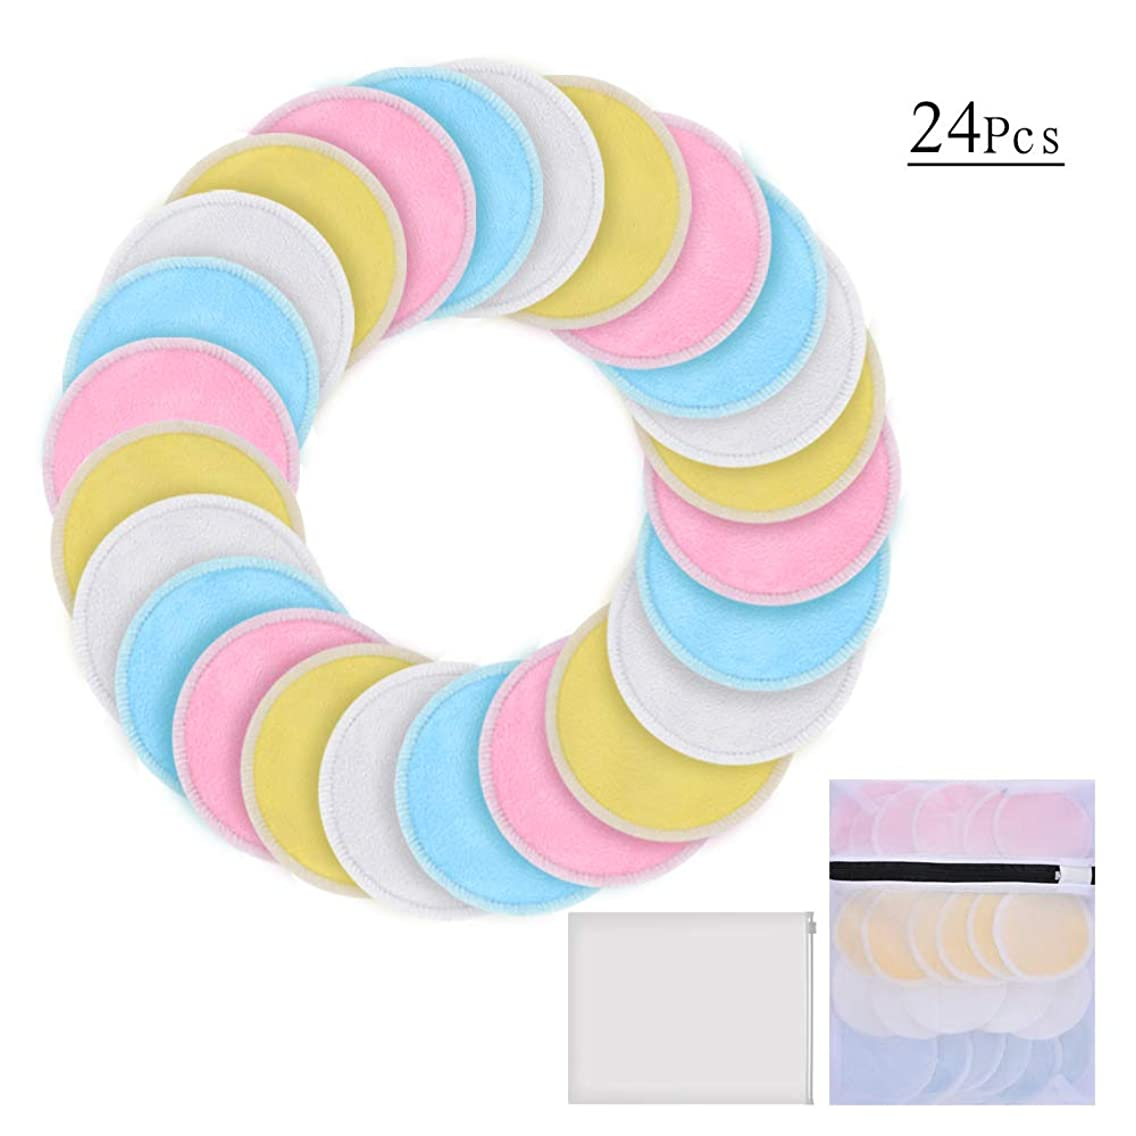 Reusable Makeup Remover Pads for face 24 Packs - Bamboo Cotton Rounds - Washable Face Makeup Remover Pads